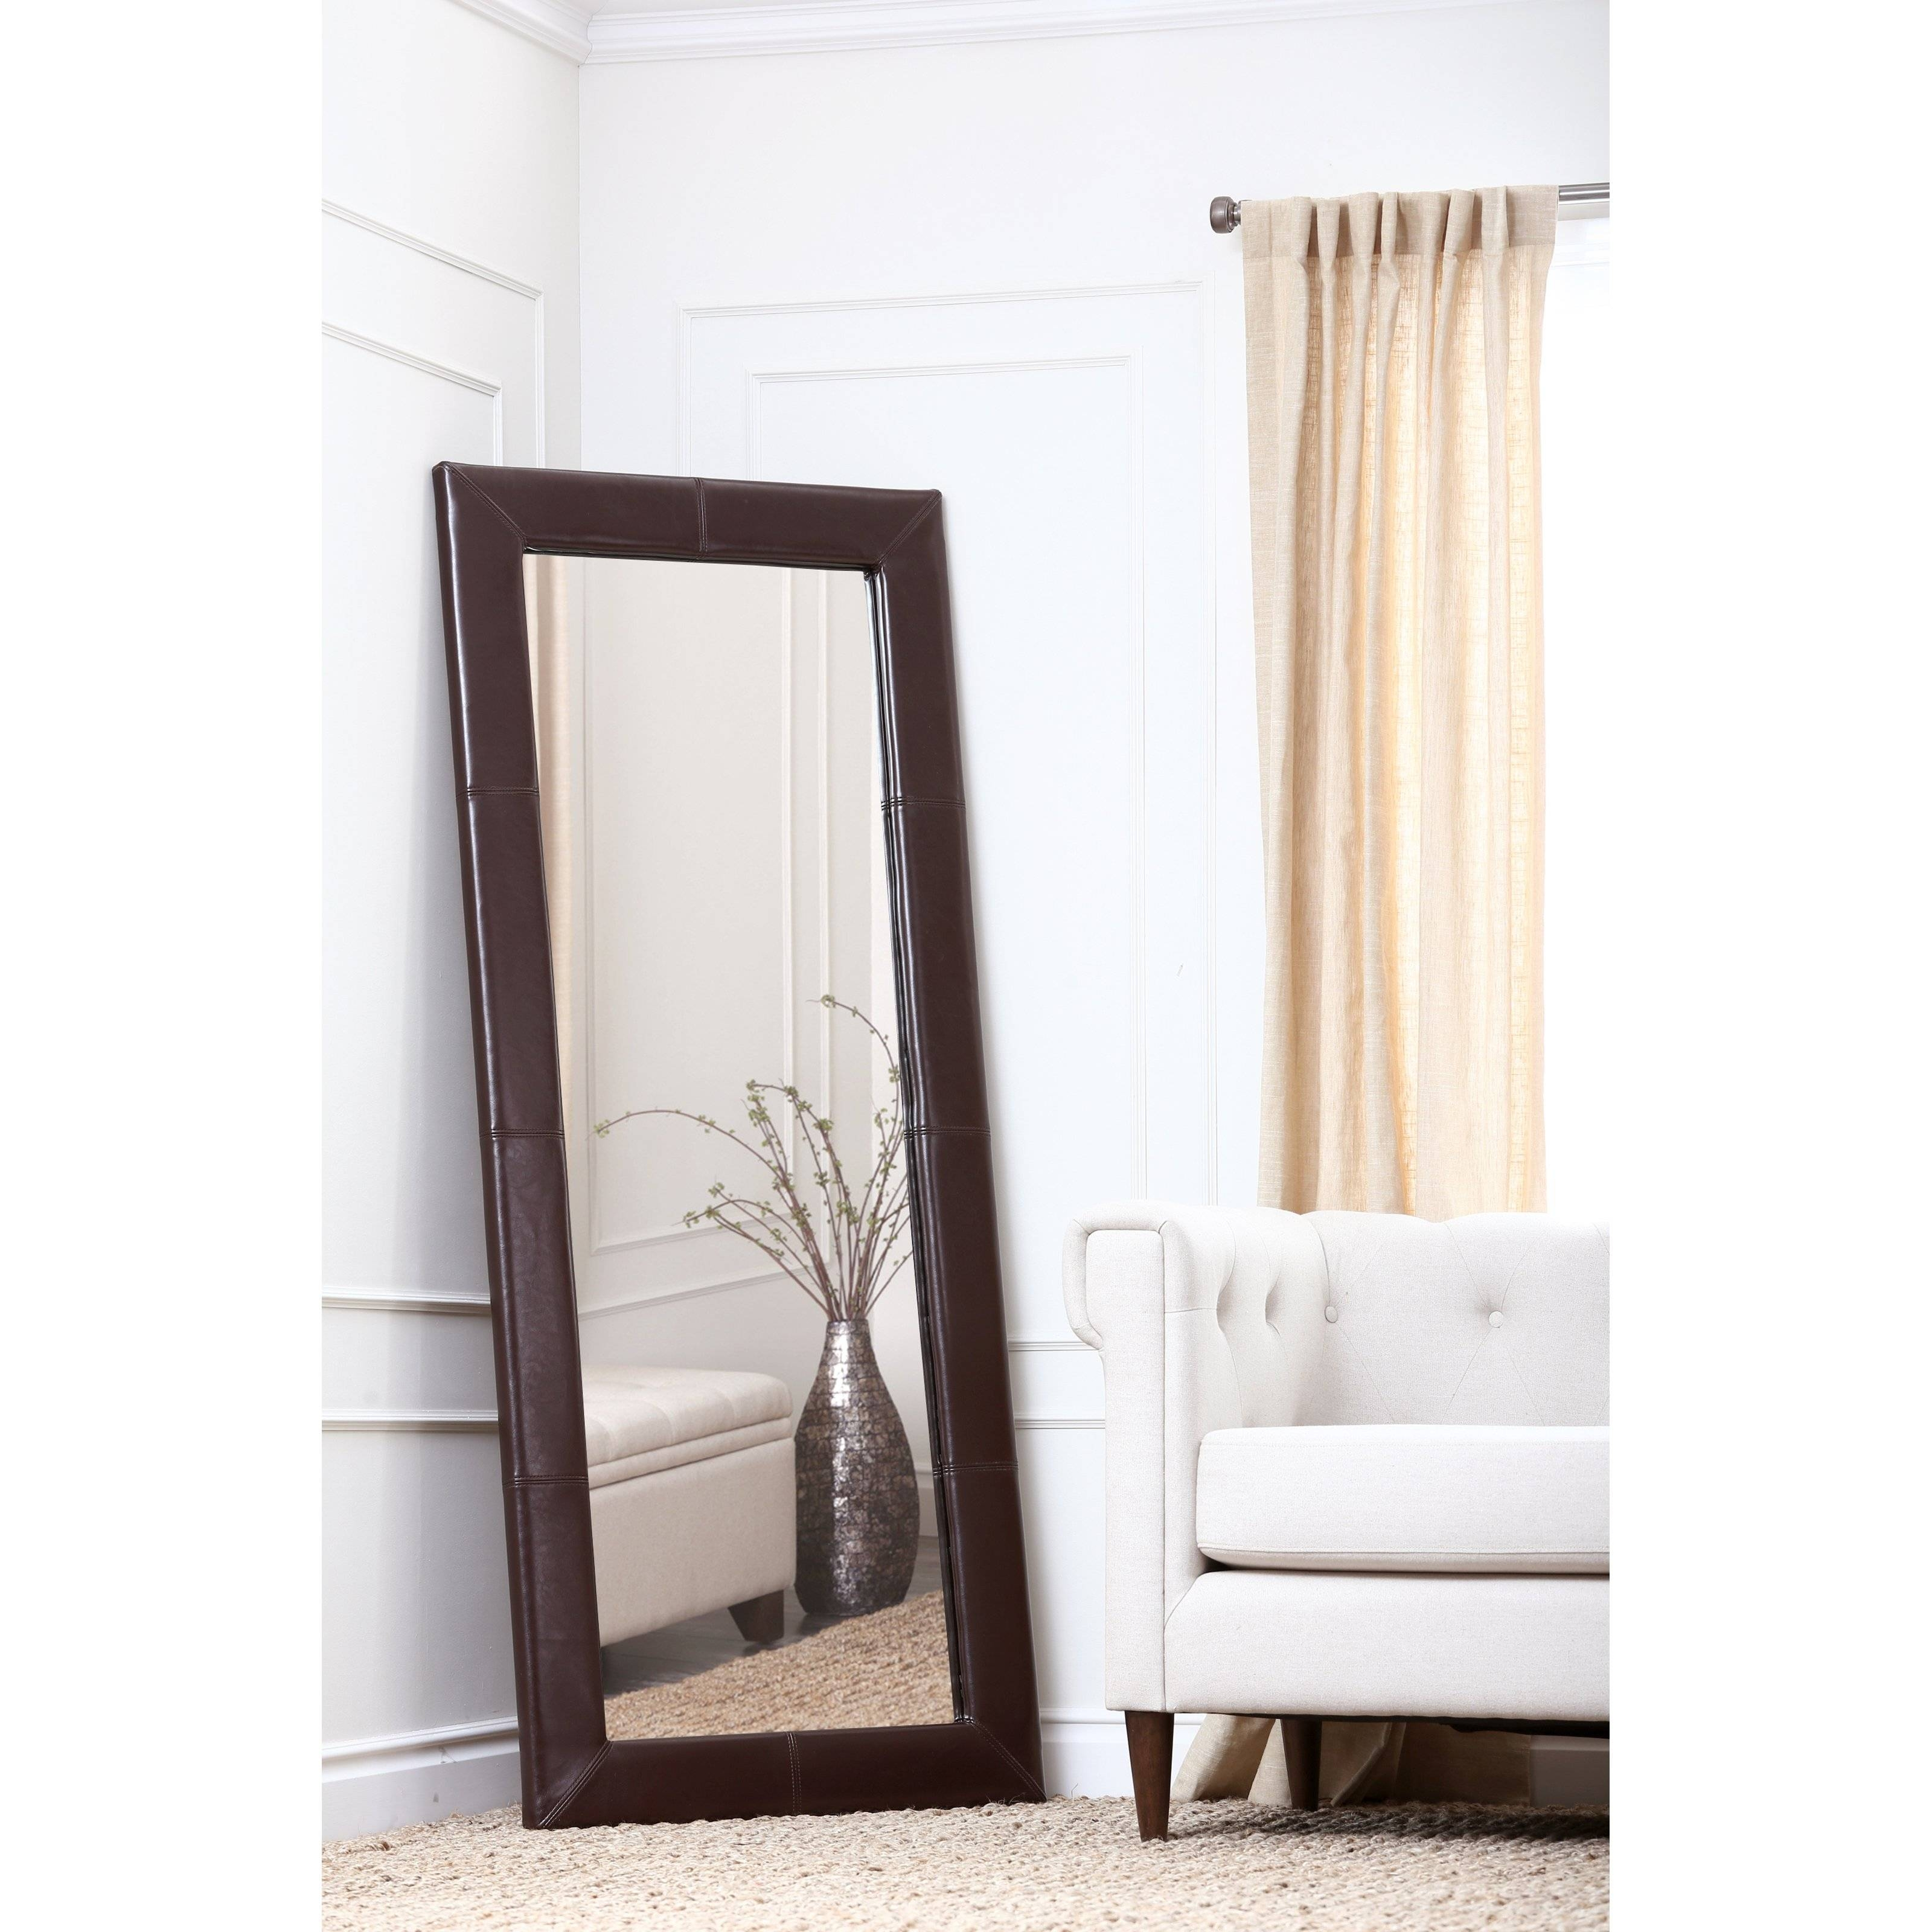 Belham Living Delano Espresso Brown Oversized Full Length Mirror within Large Brown Mirrors (Image 4 of 15)